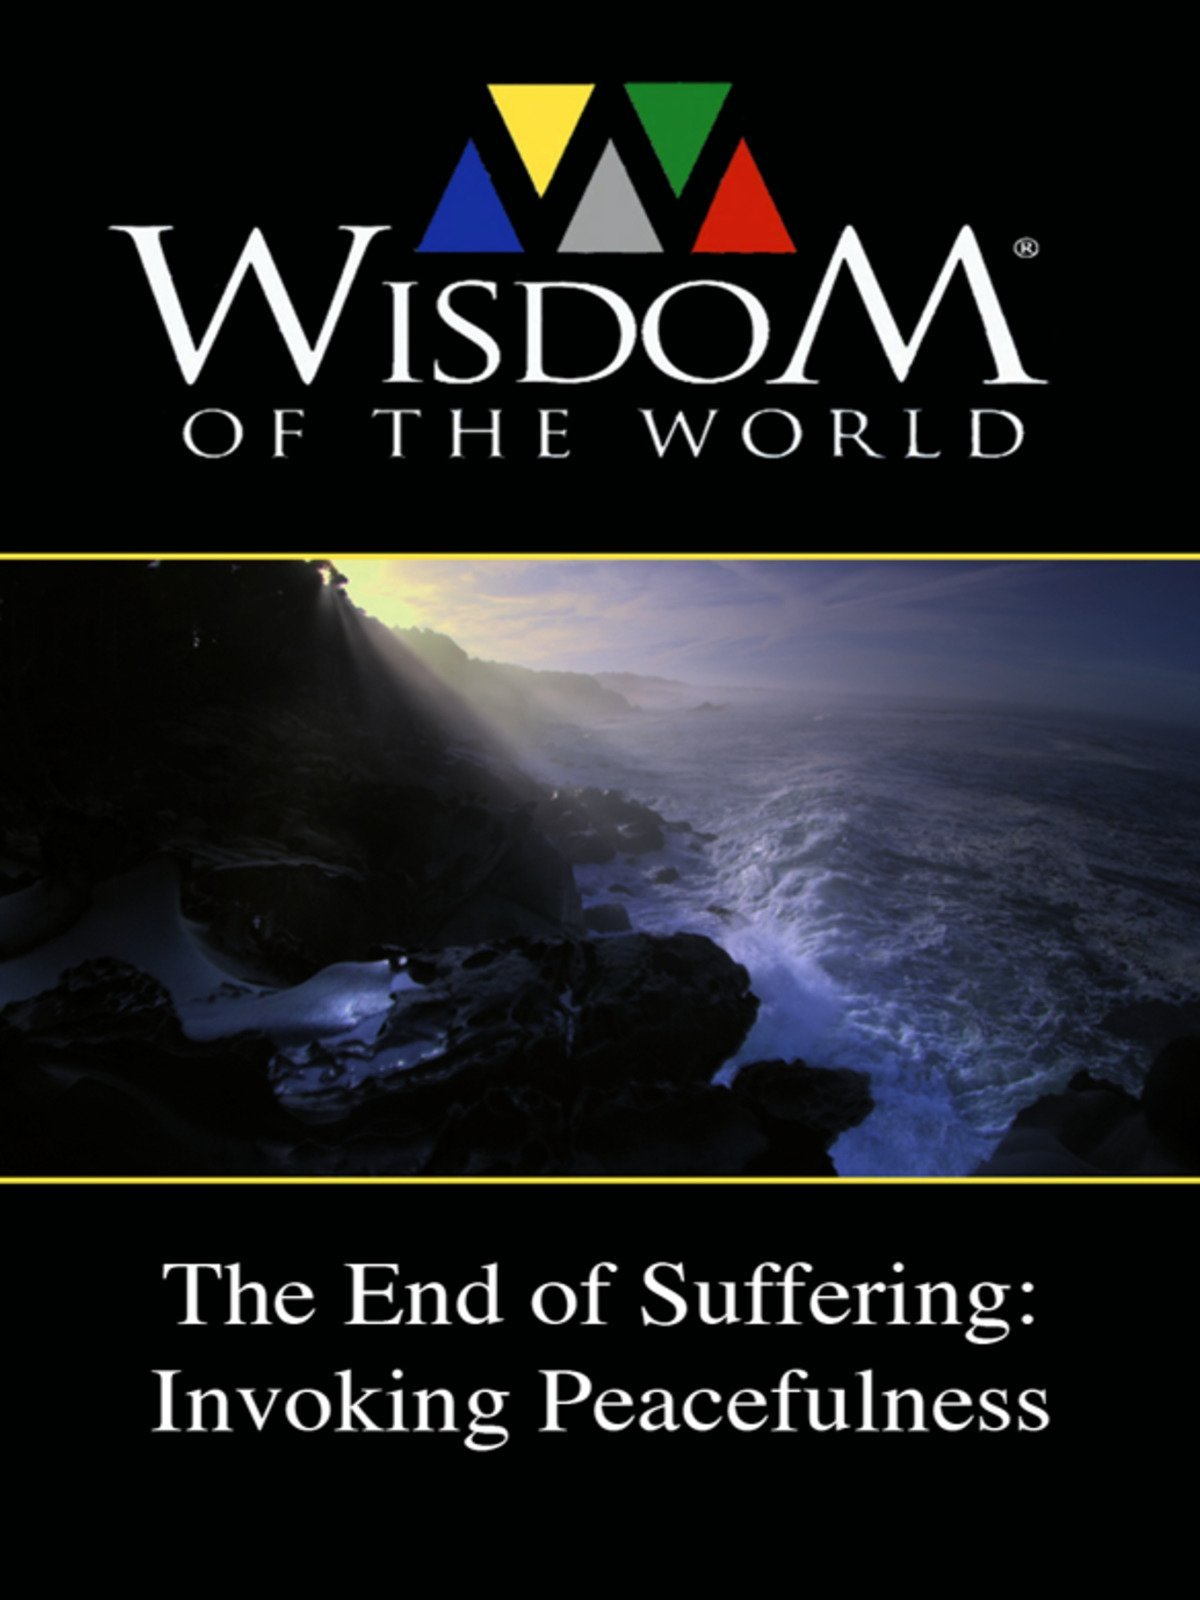 The End of Suffering: Invoking Peacefulness